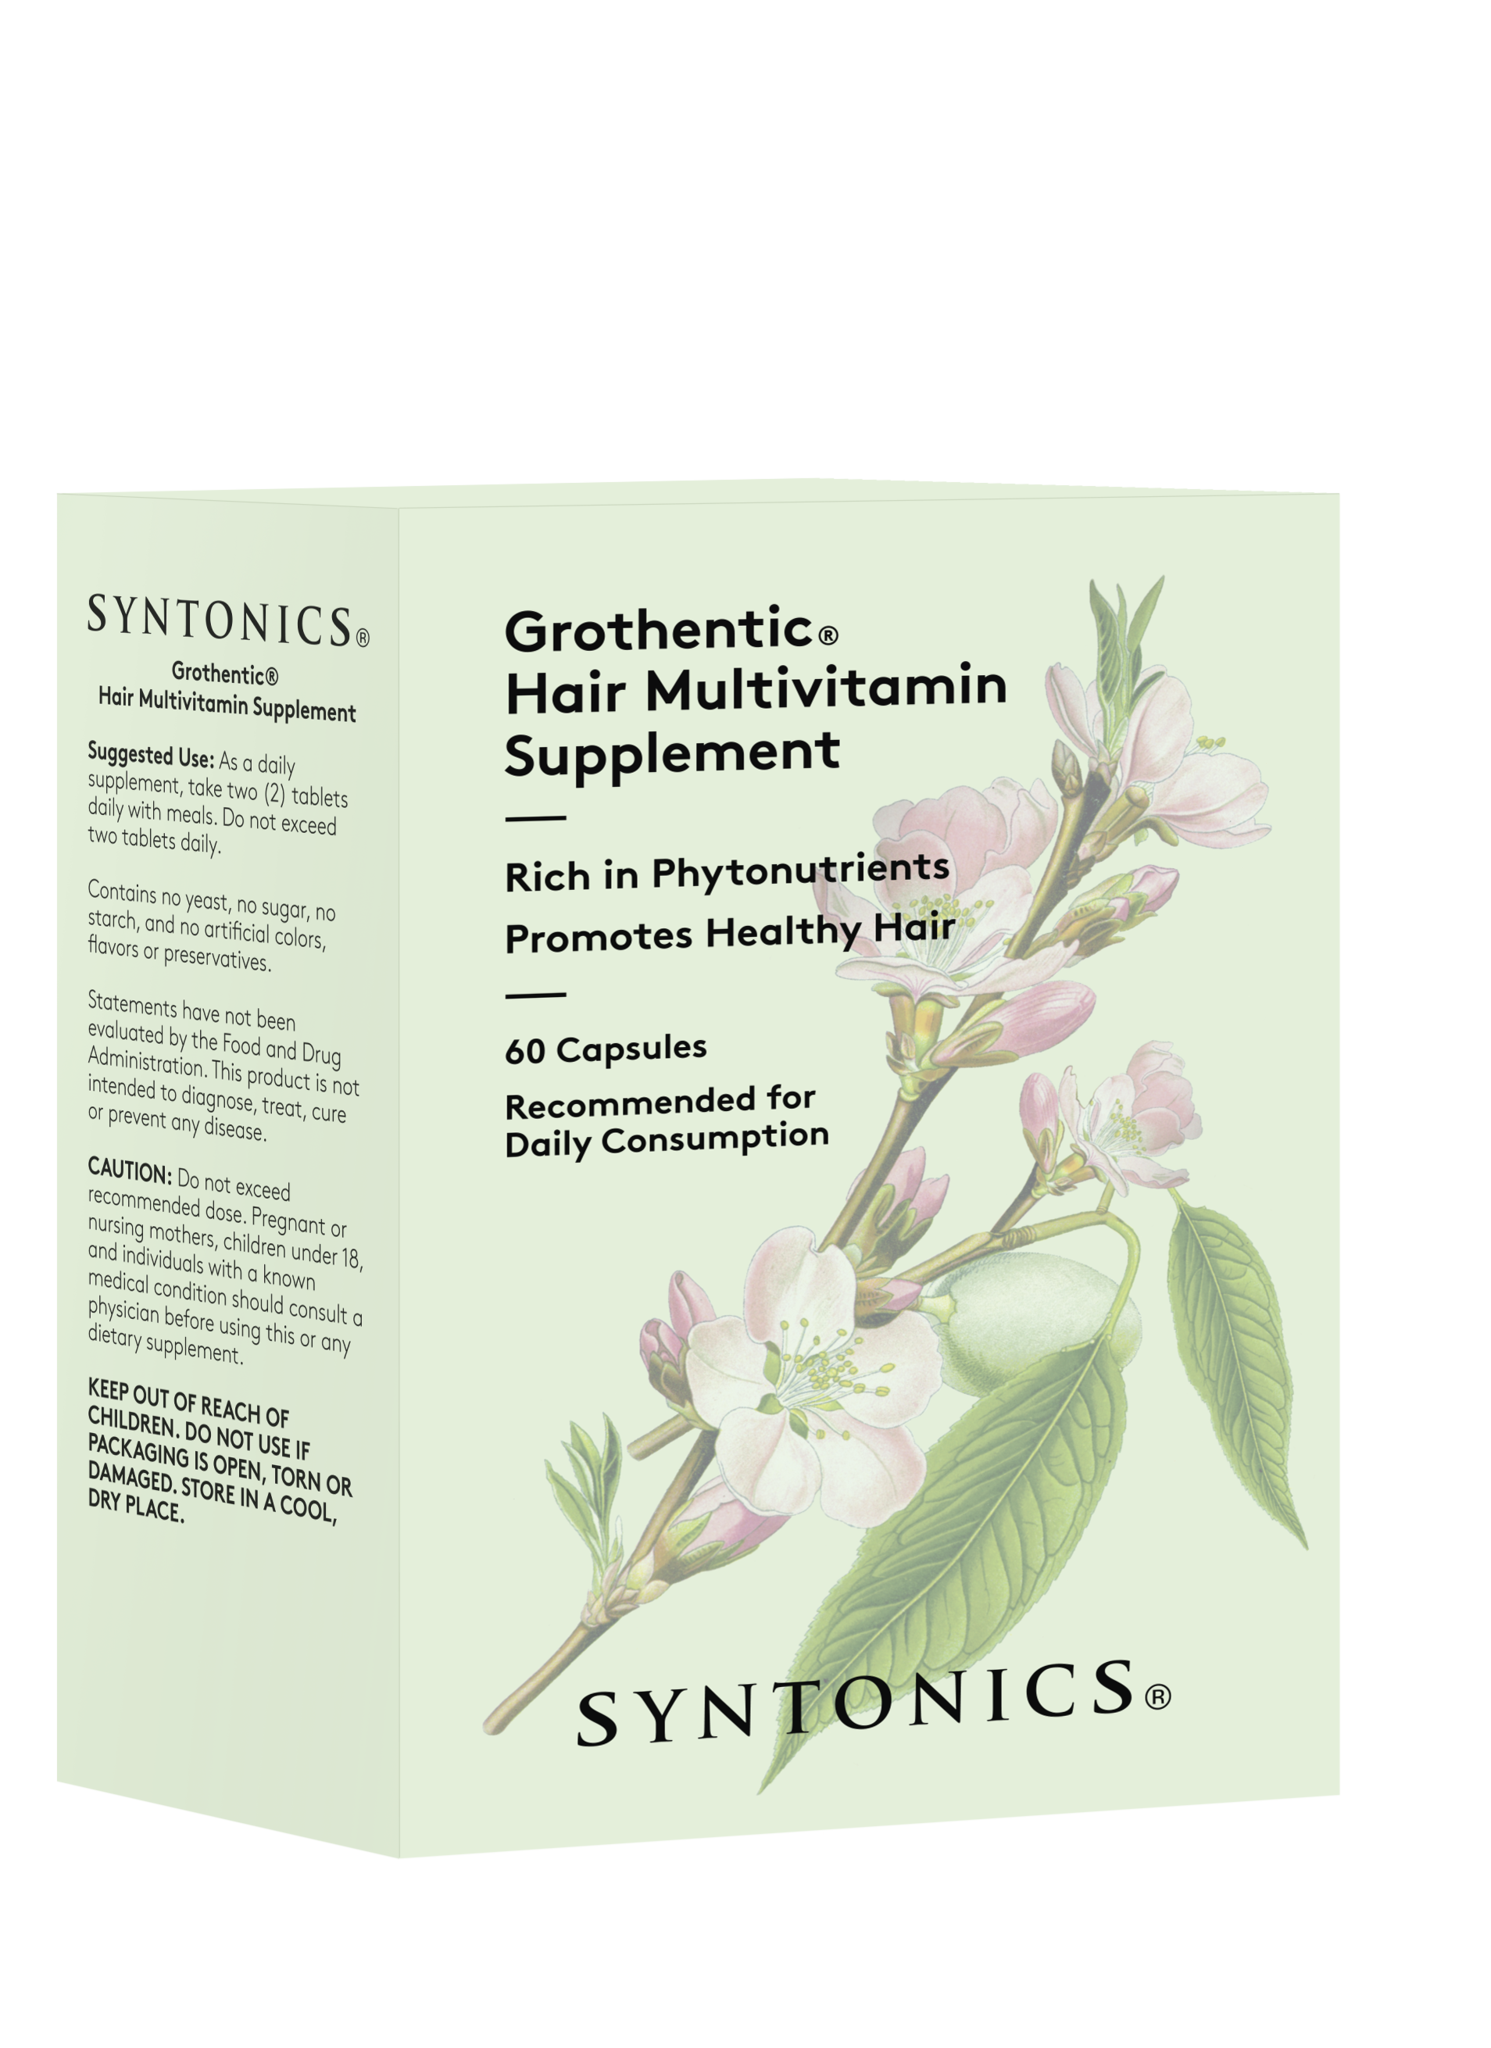 Grothentic® Hair Multivitamin Supplement